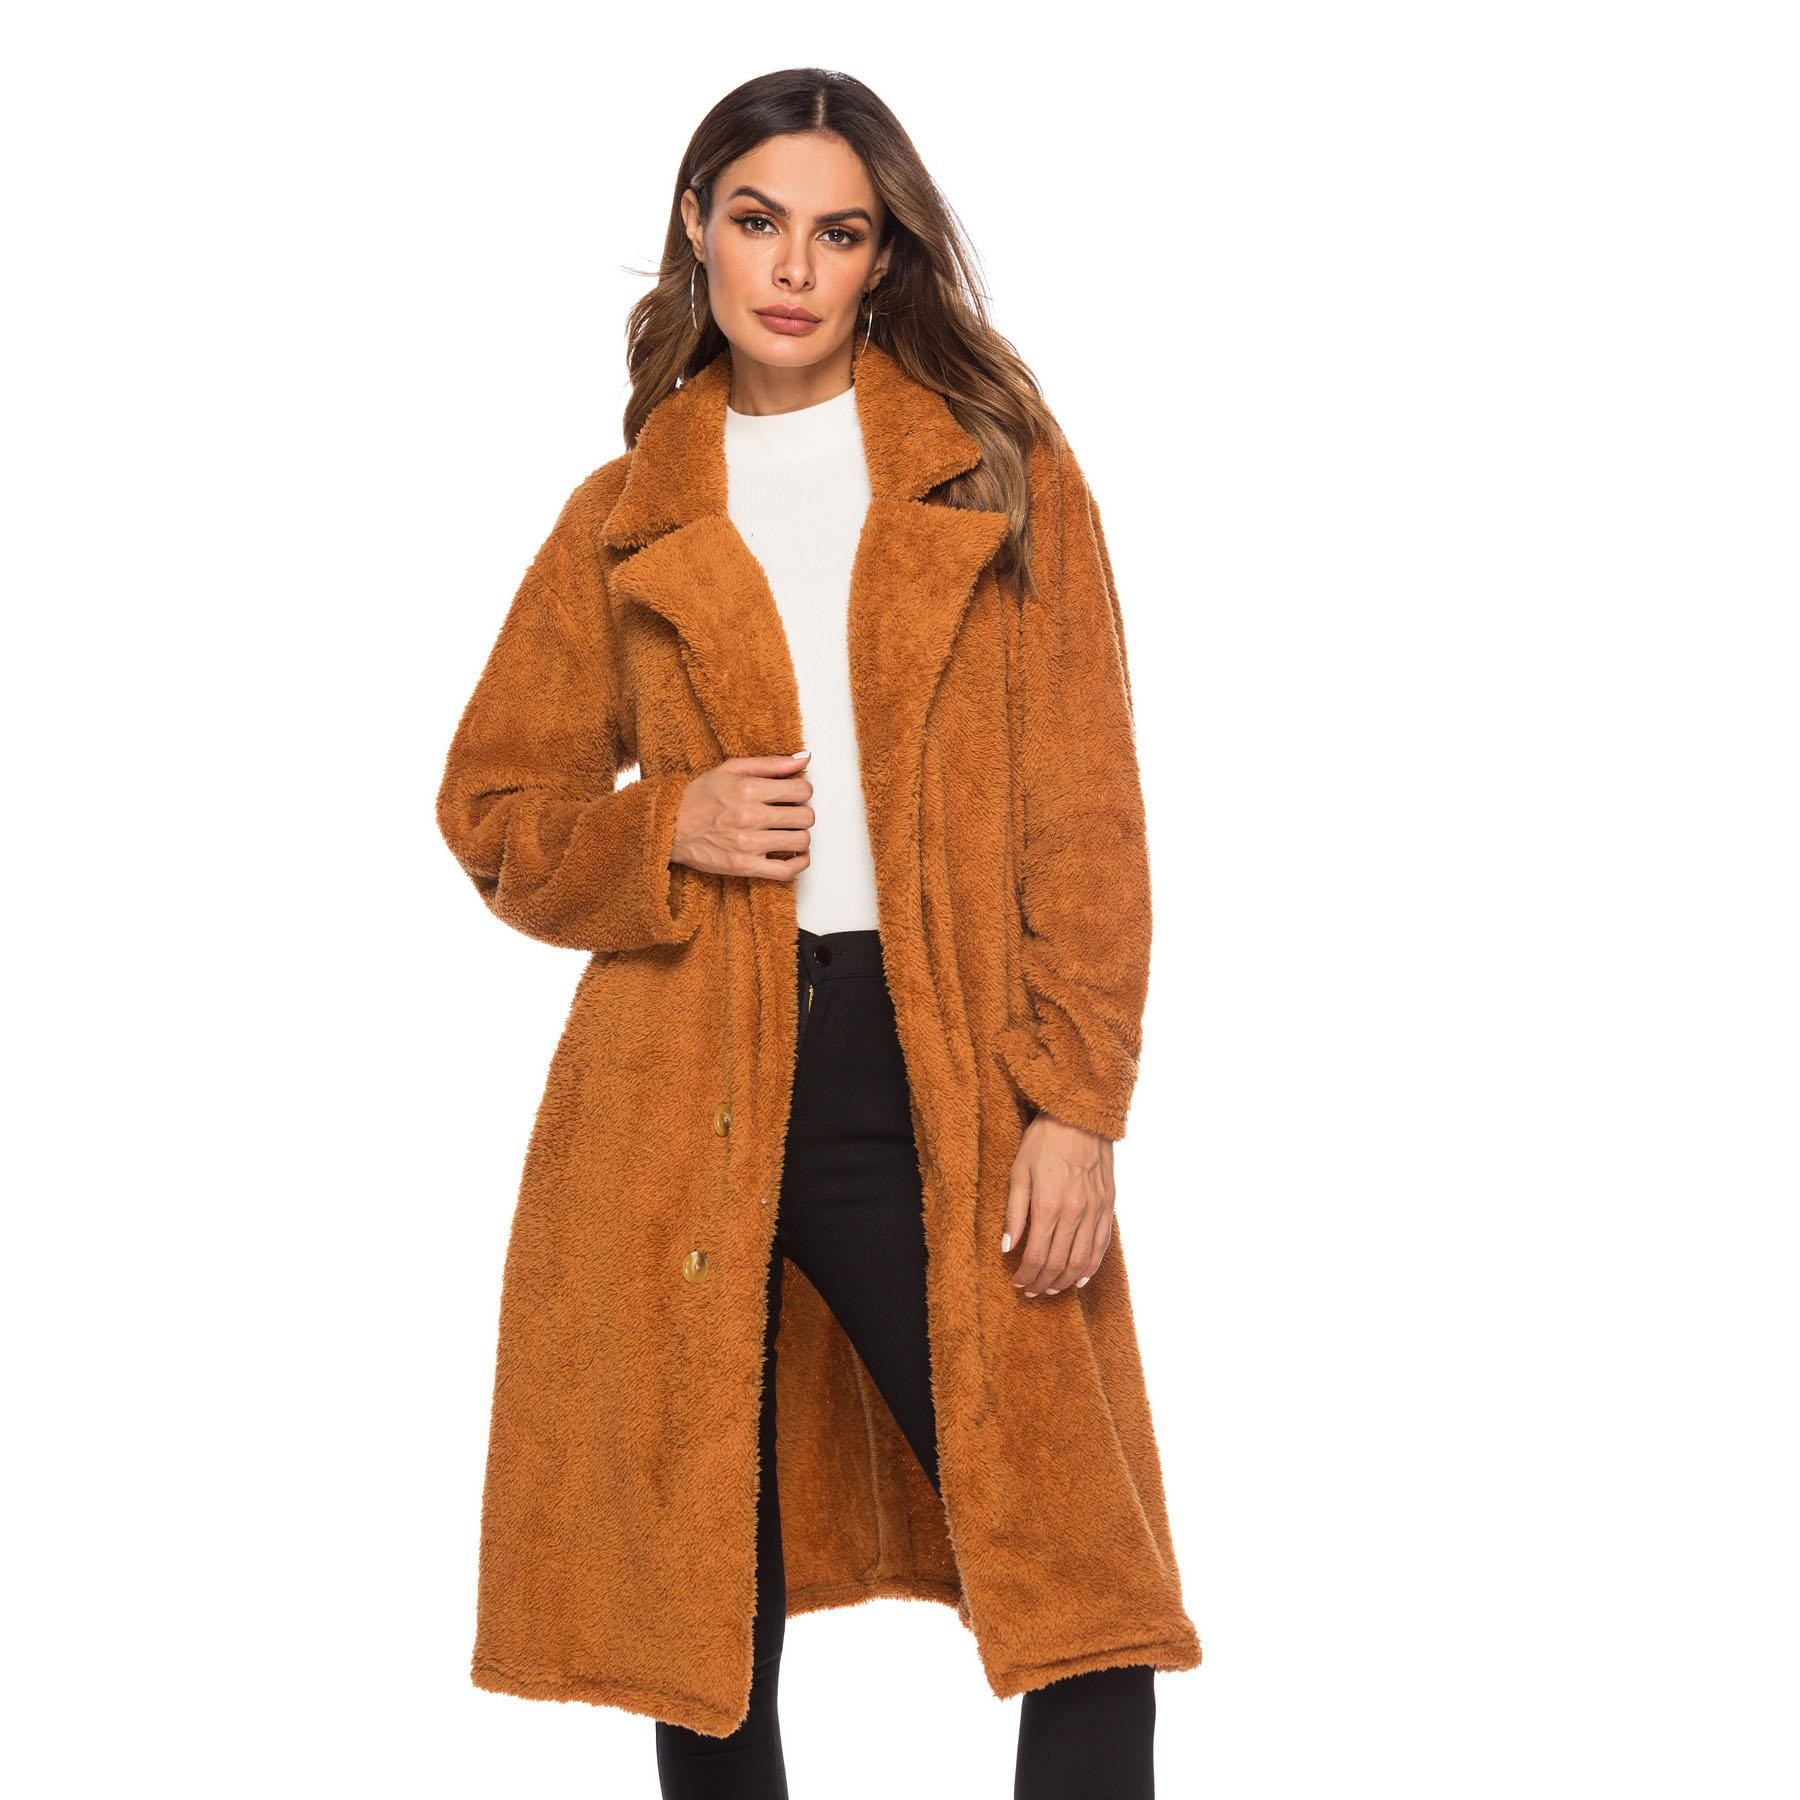 c1fa085da Brand New Fashion Women's Outerwear Casual Coat Thick Winter Wool ...